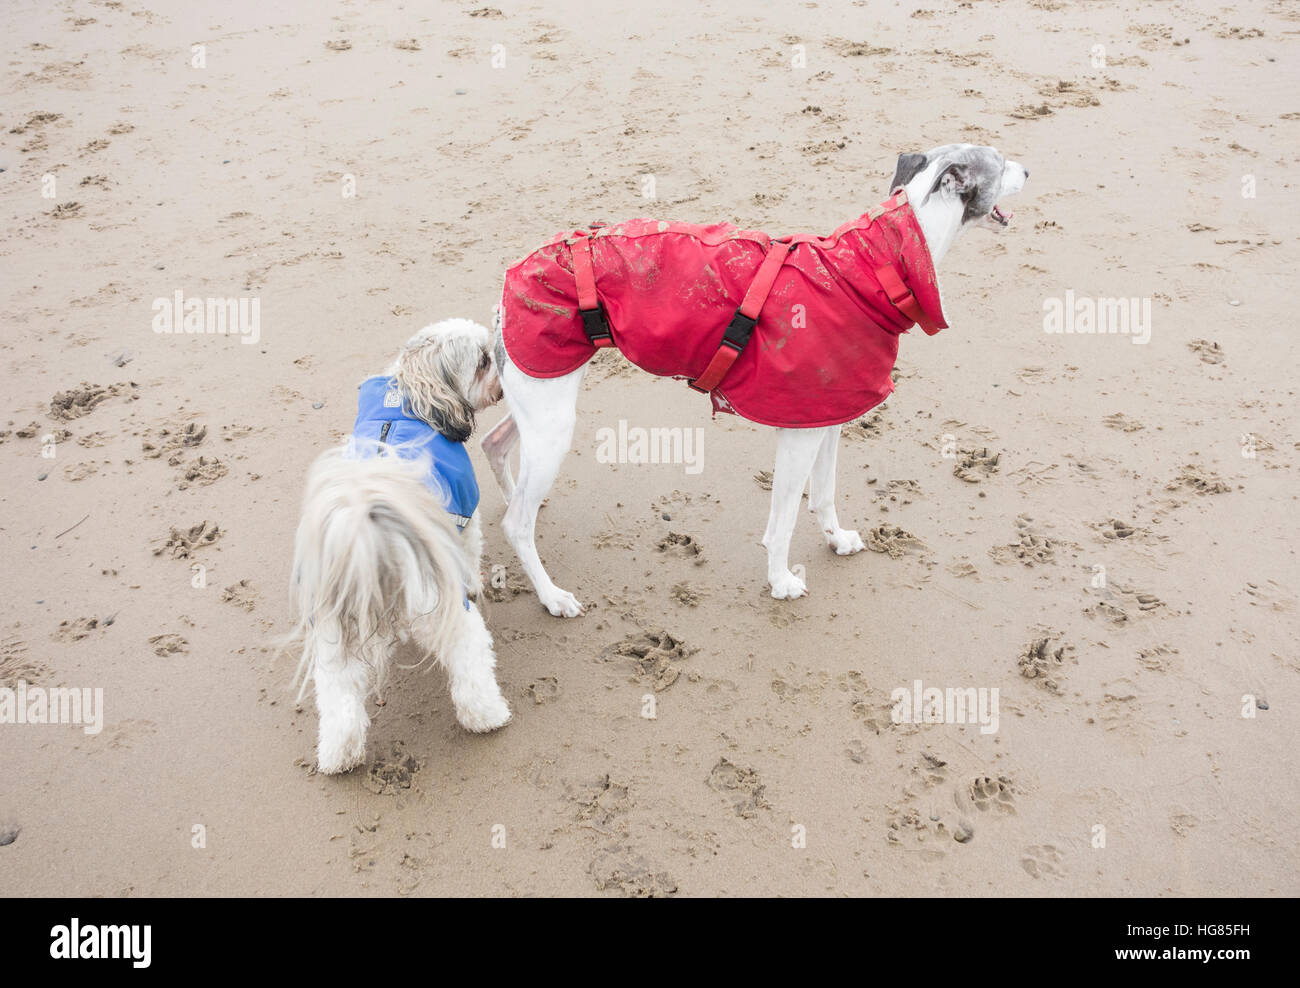 Dog sniffing other dog on beach - Stock Image